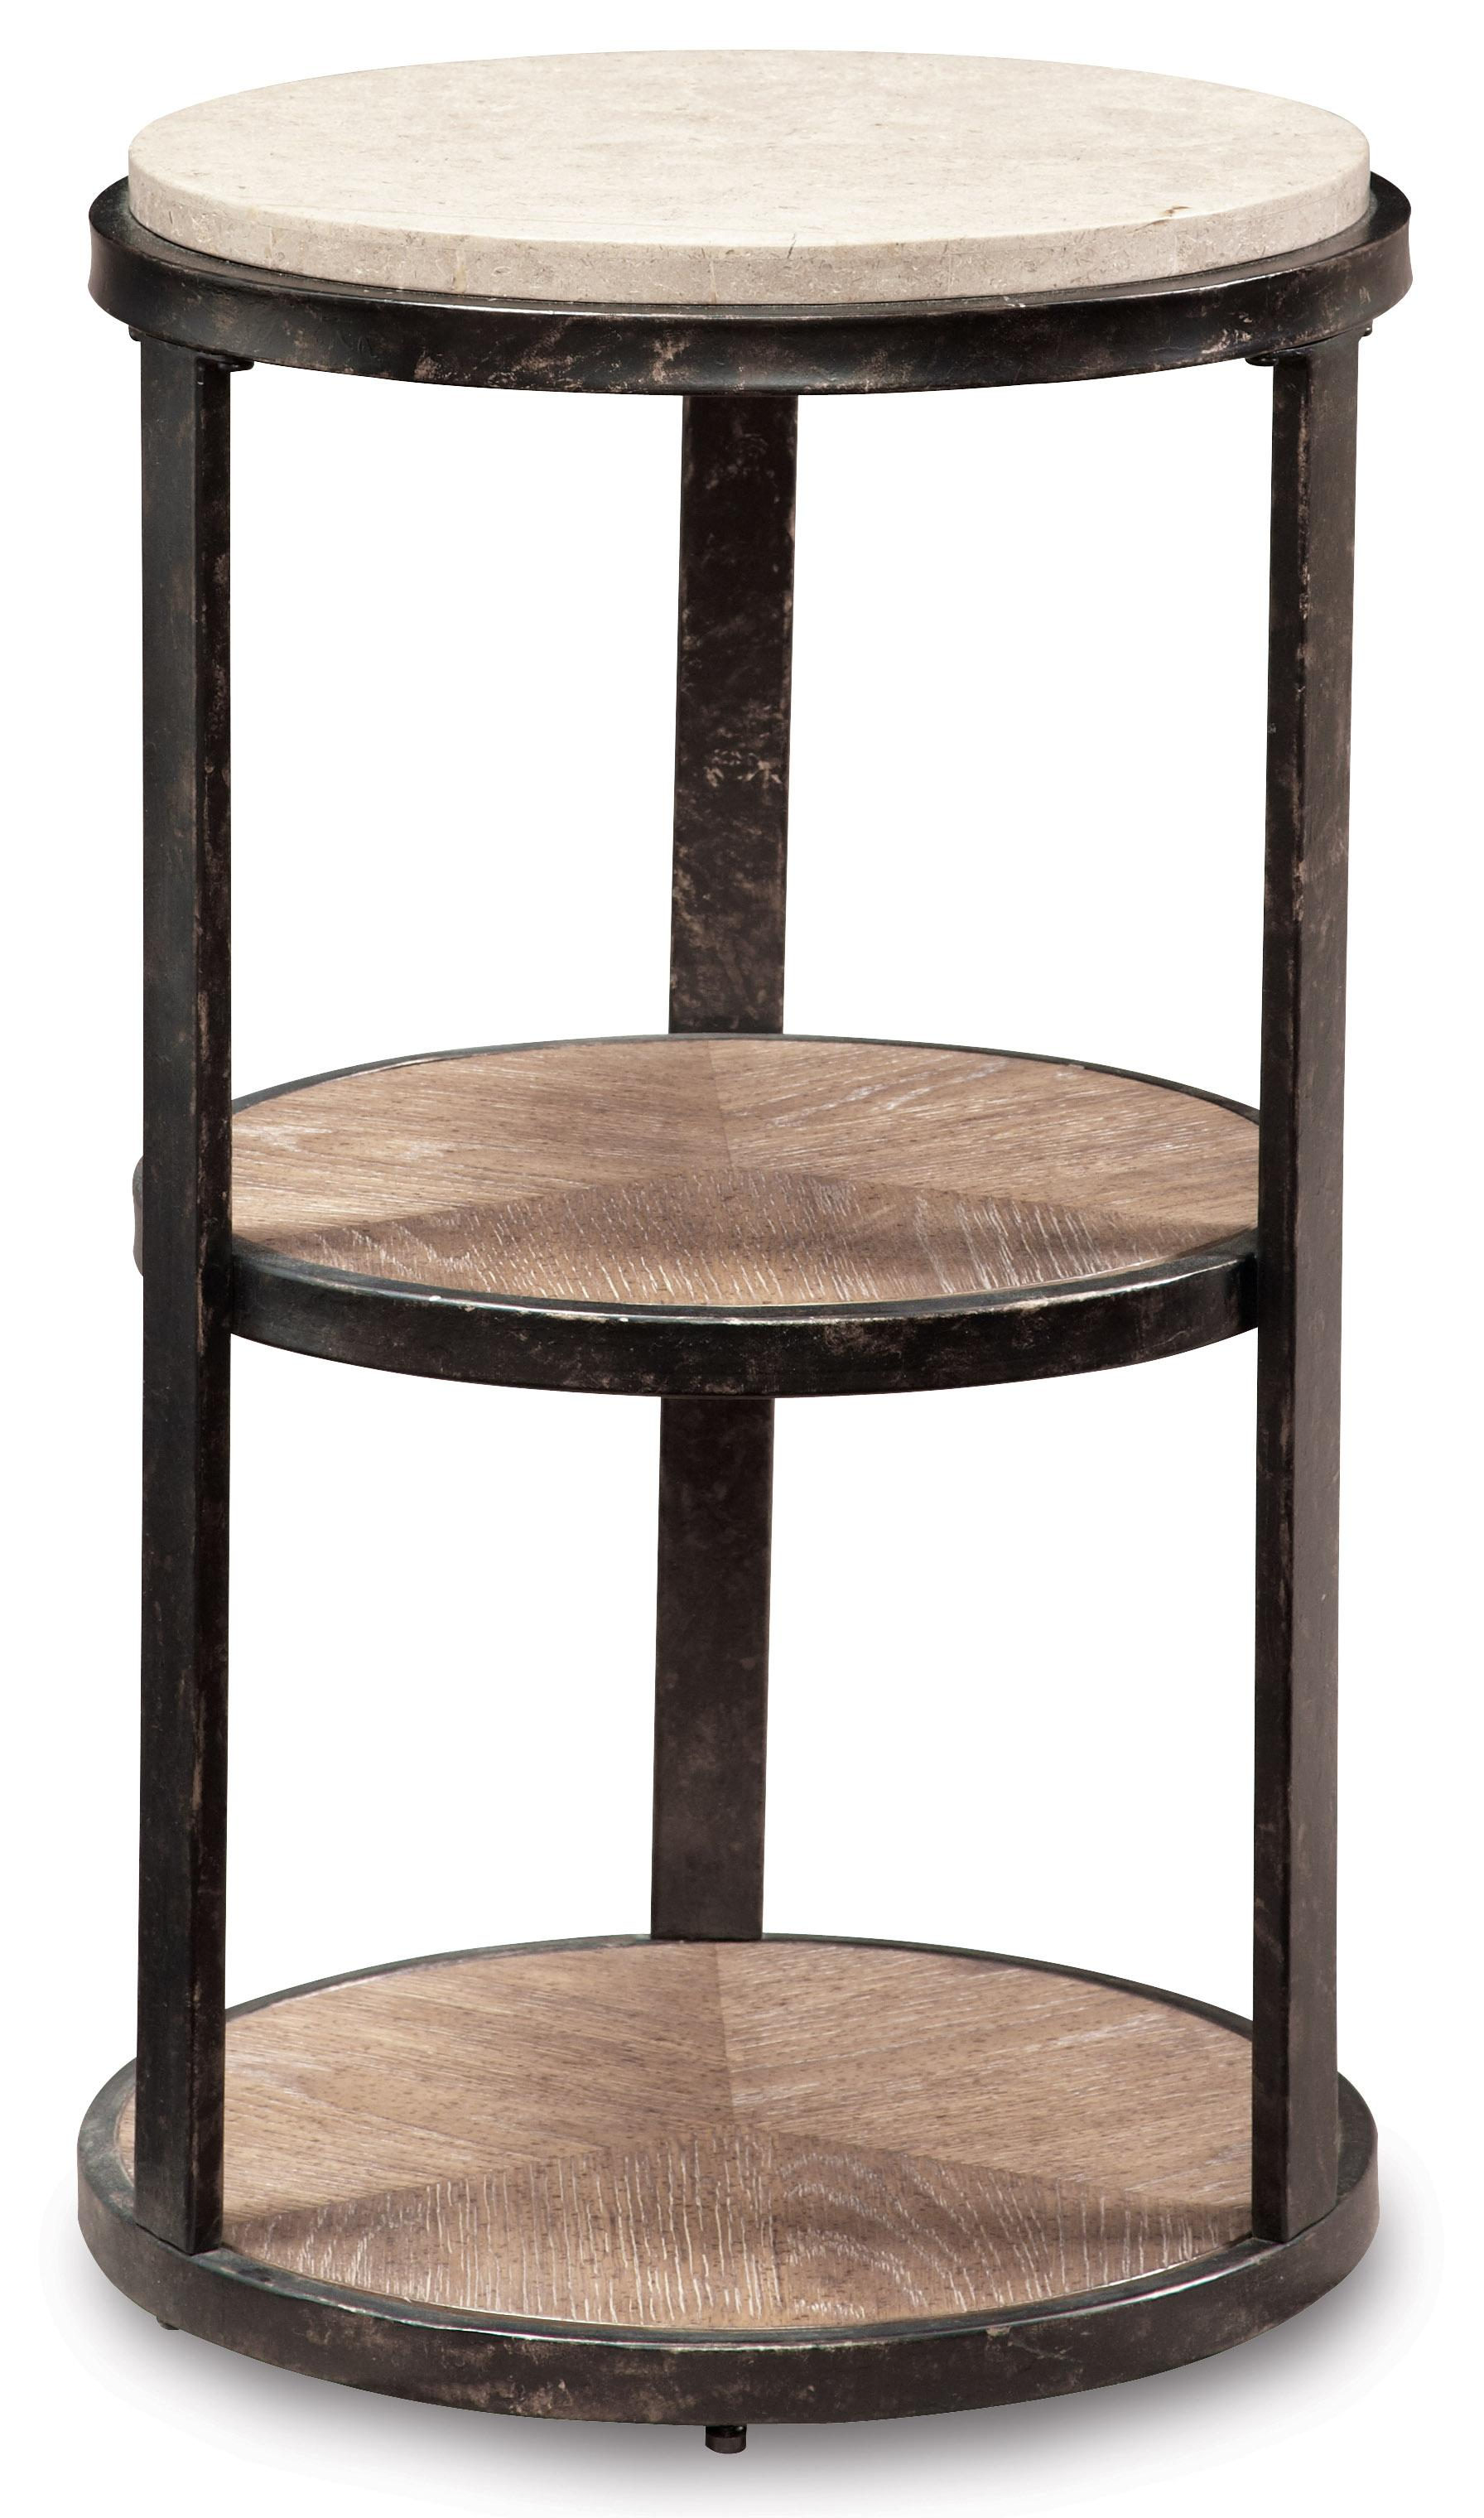 tall pedestal large distressed white round diy target end tables base accent small table unfinished wood outstanding oak black square antique full size tile top patio furniture